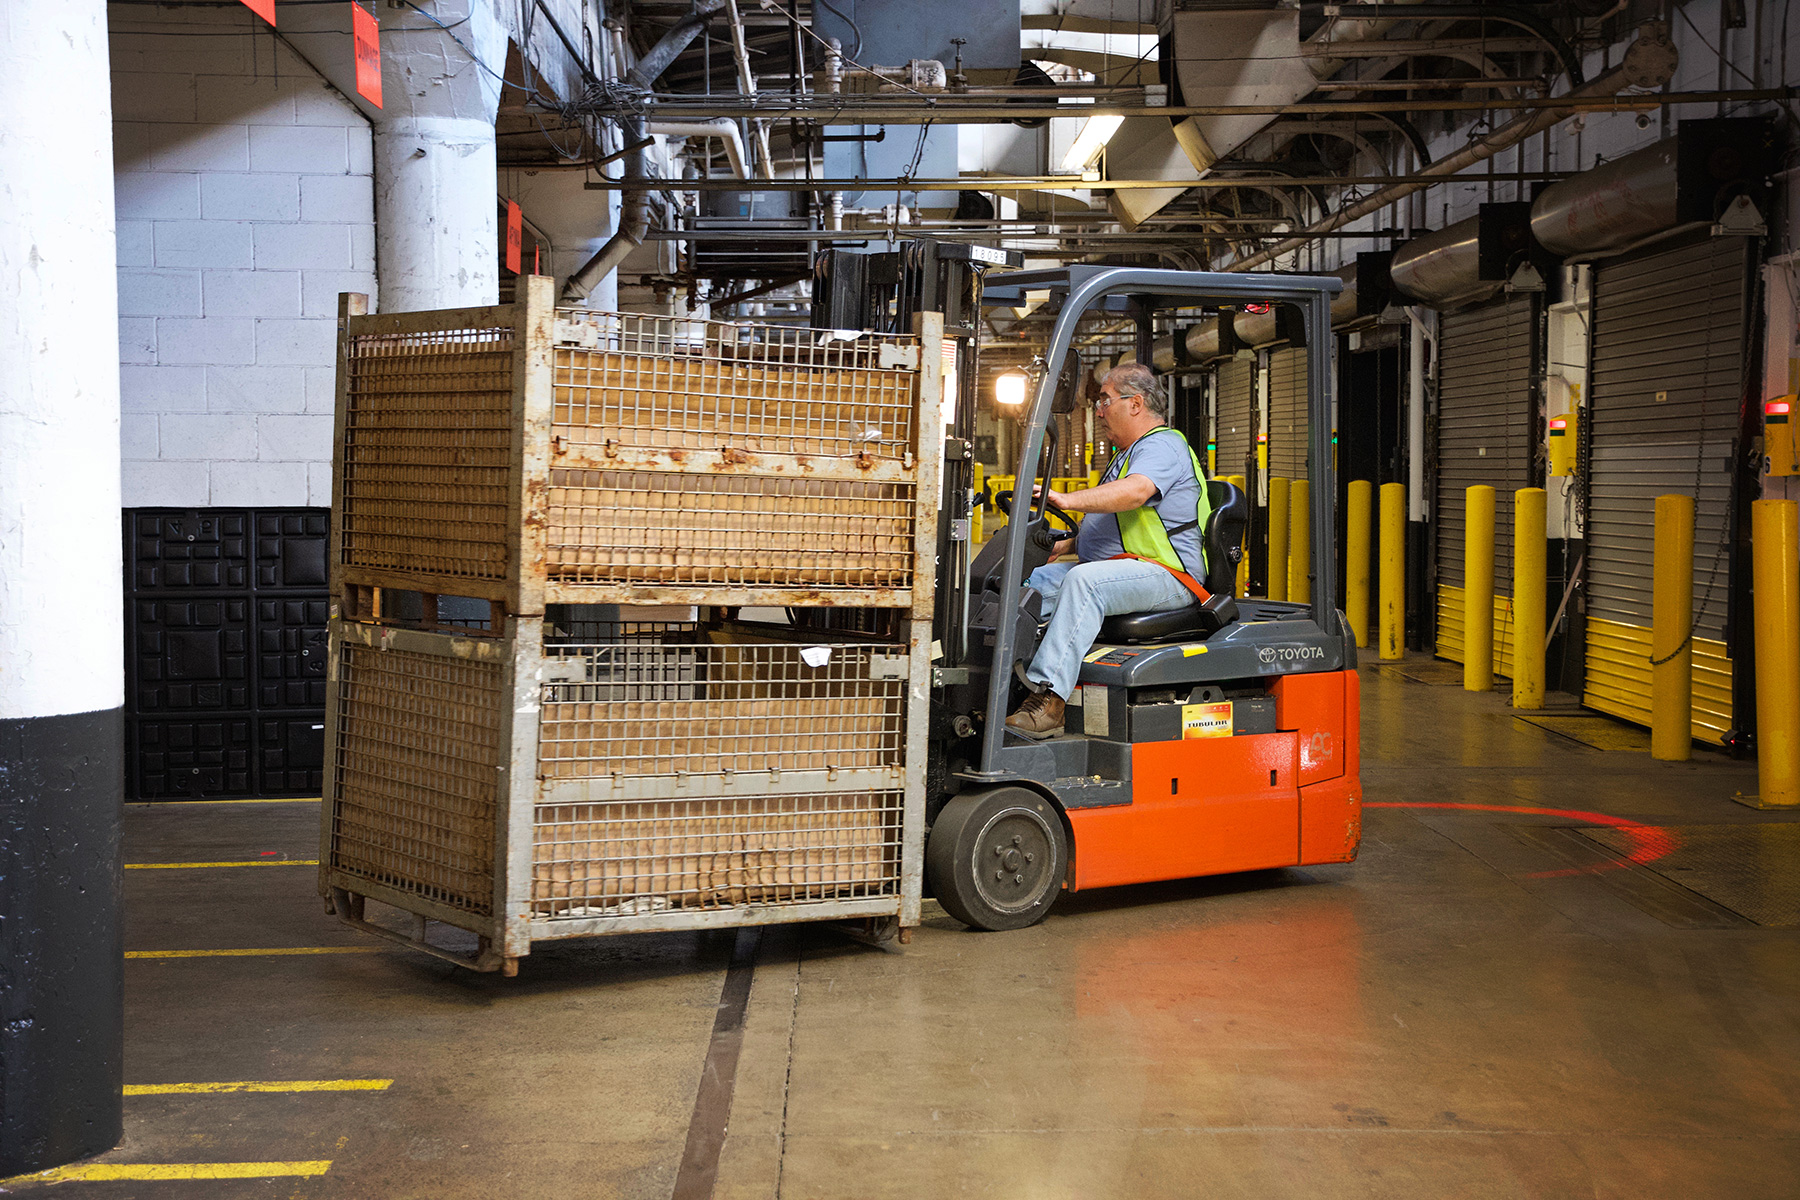 man operating fork lift in warehouse